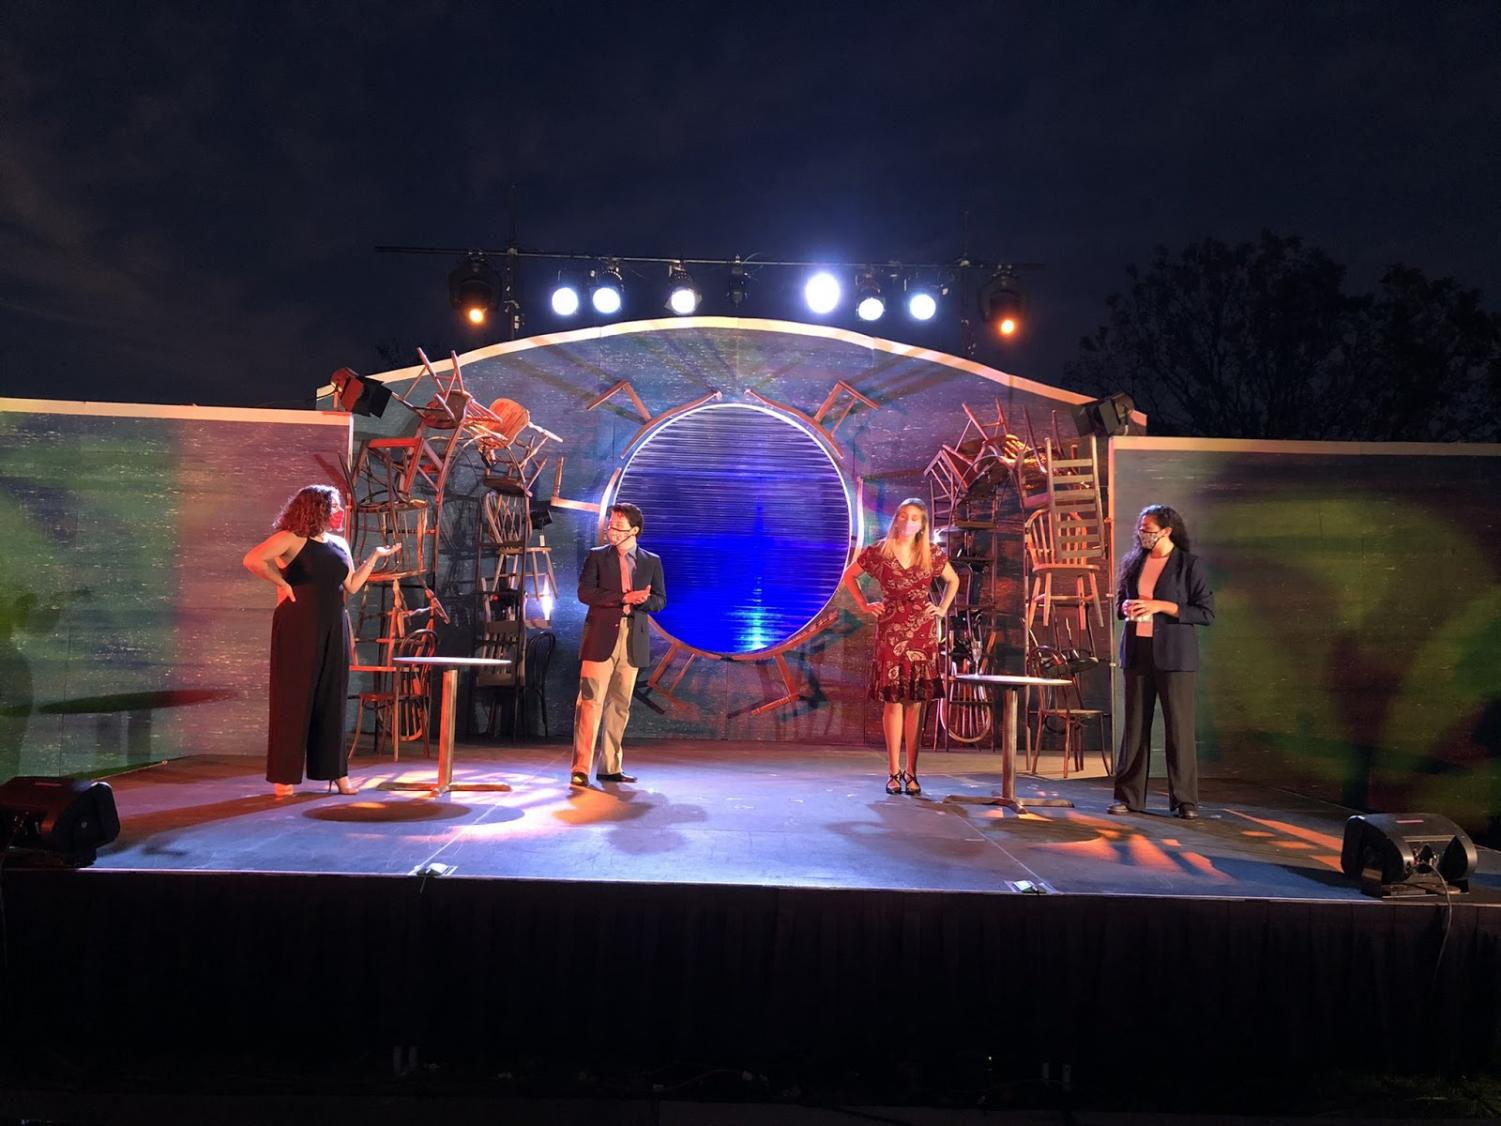 All performances were socially distant and would take place after the sun went down, allowing for lights and specials to be seen on both the actors and the set.